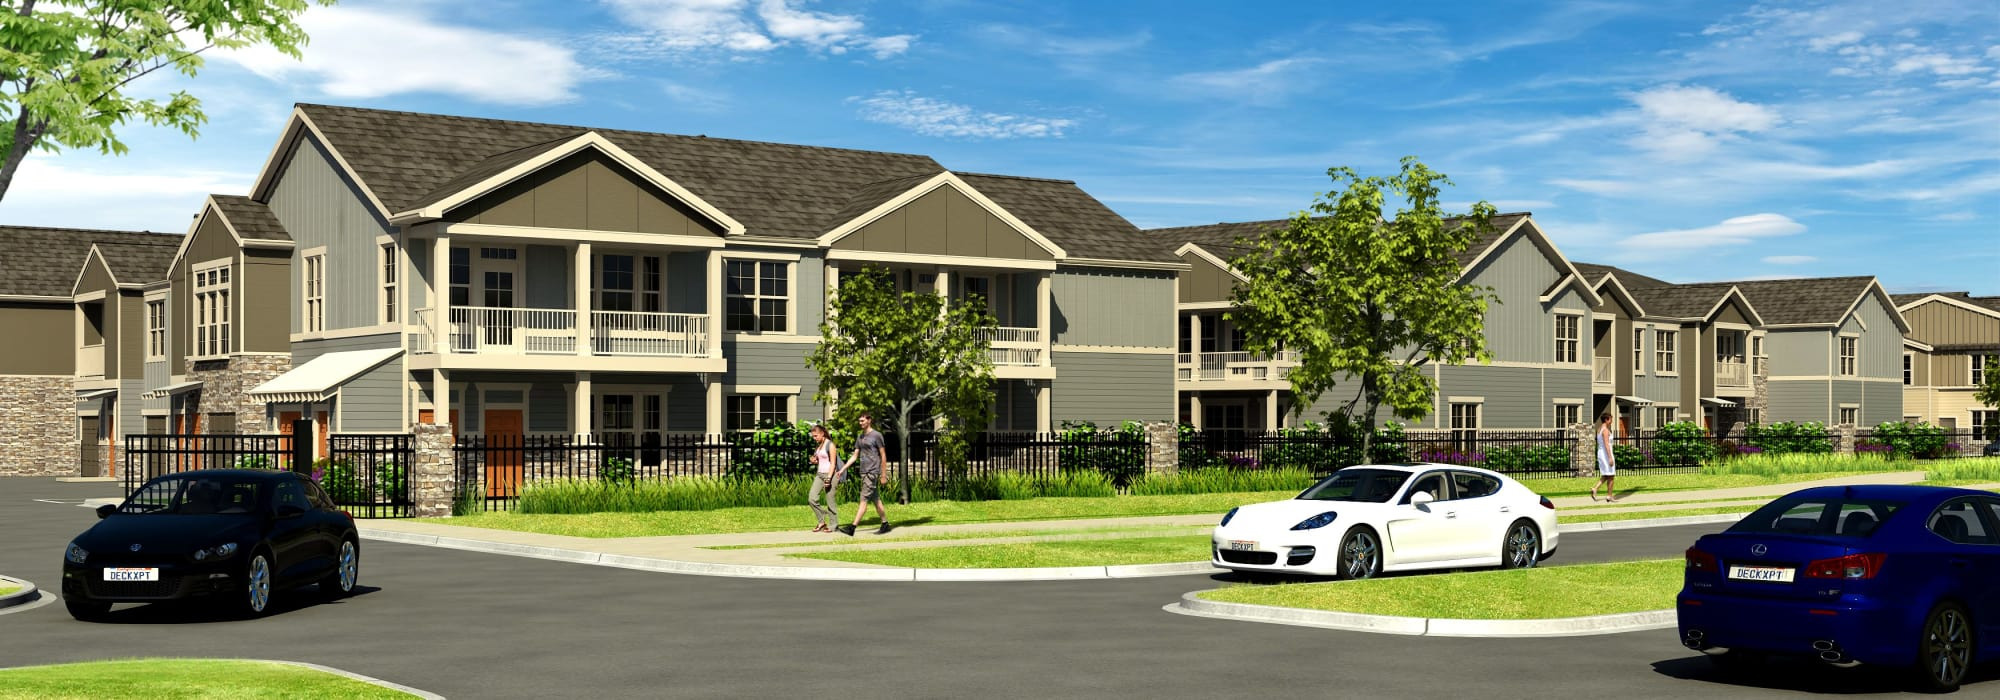 Apartments at Springs at Cobblestone Lake in Apple Valley, Minnesota